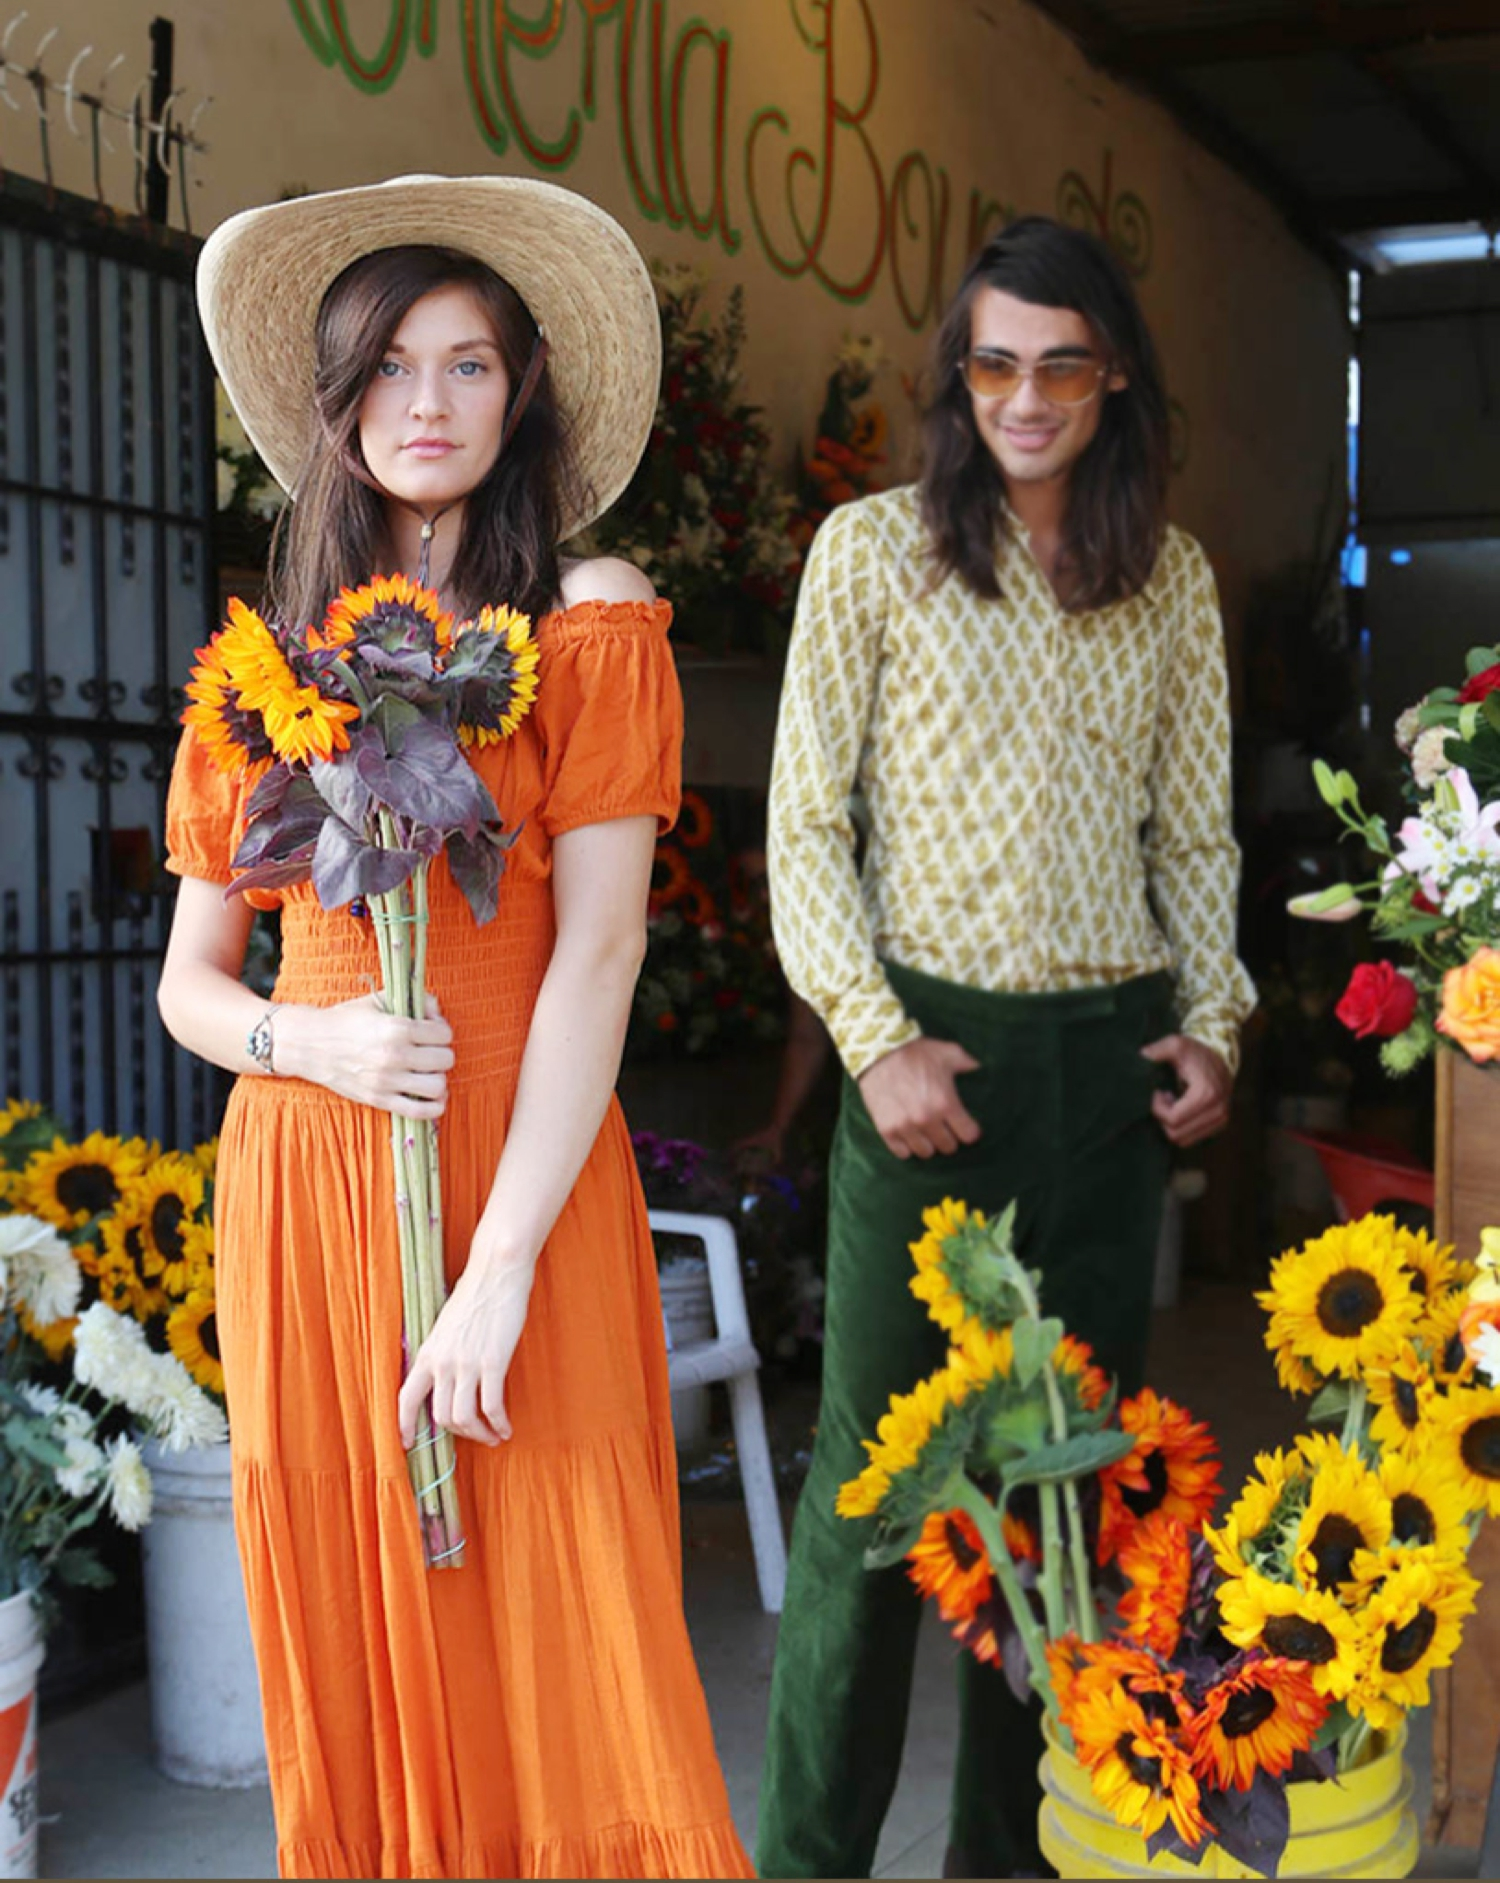 couple fashion editorial with sunflowers and retro fall fashion in mexico baja california